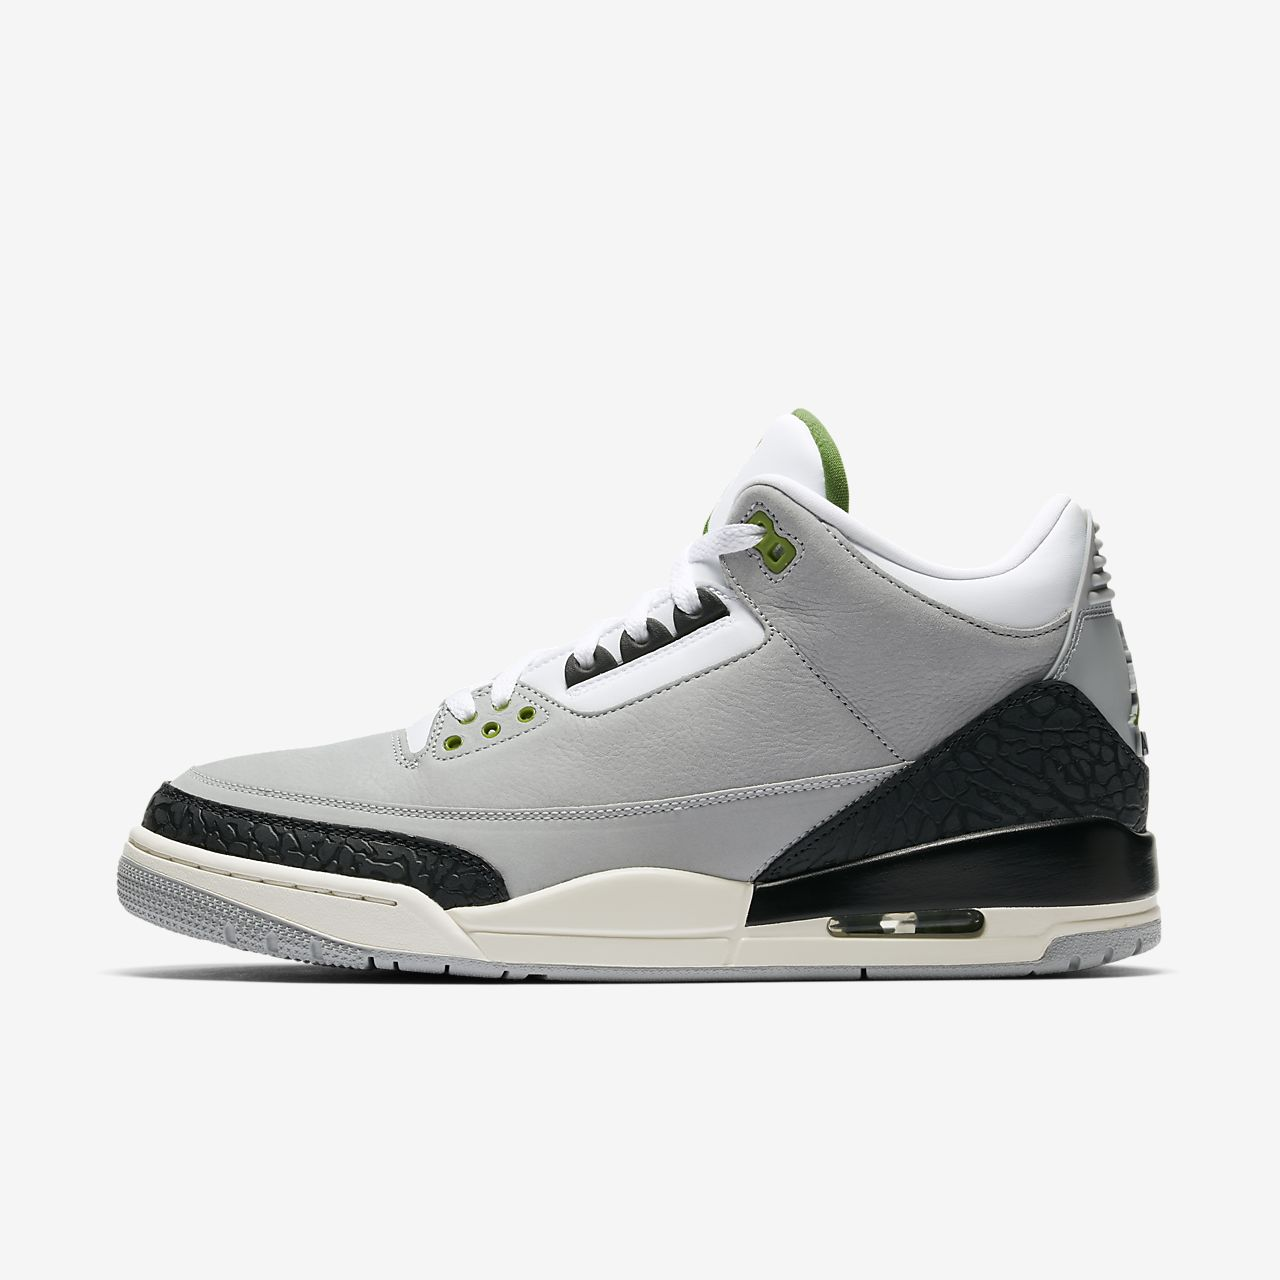 check out dbd01 662cd Air Jordan 3 Retro Men's Shoe